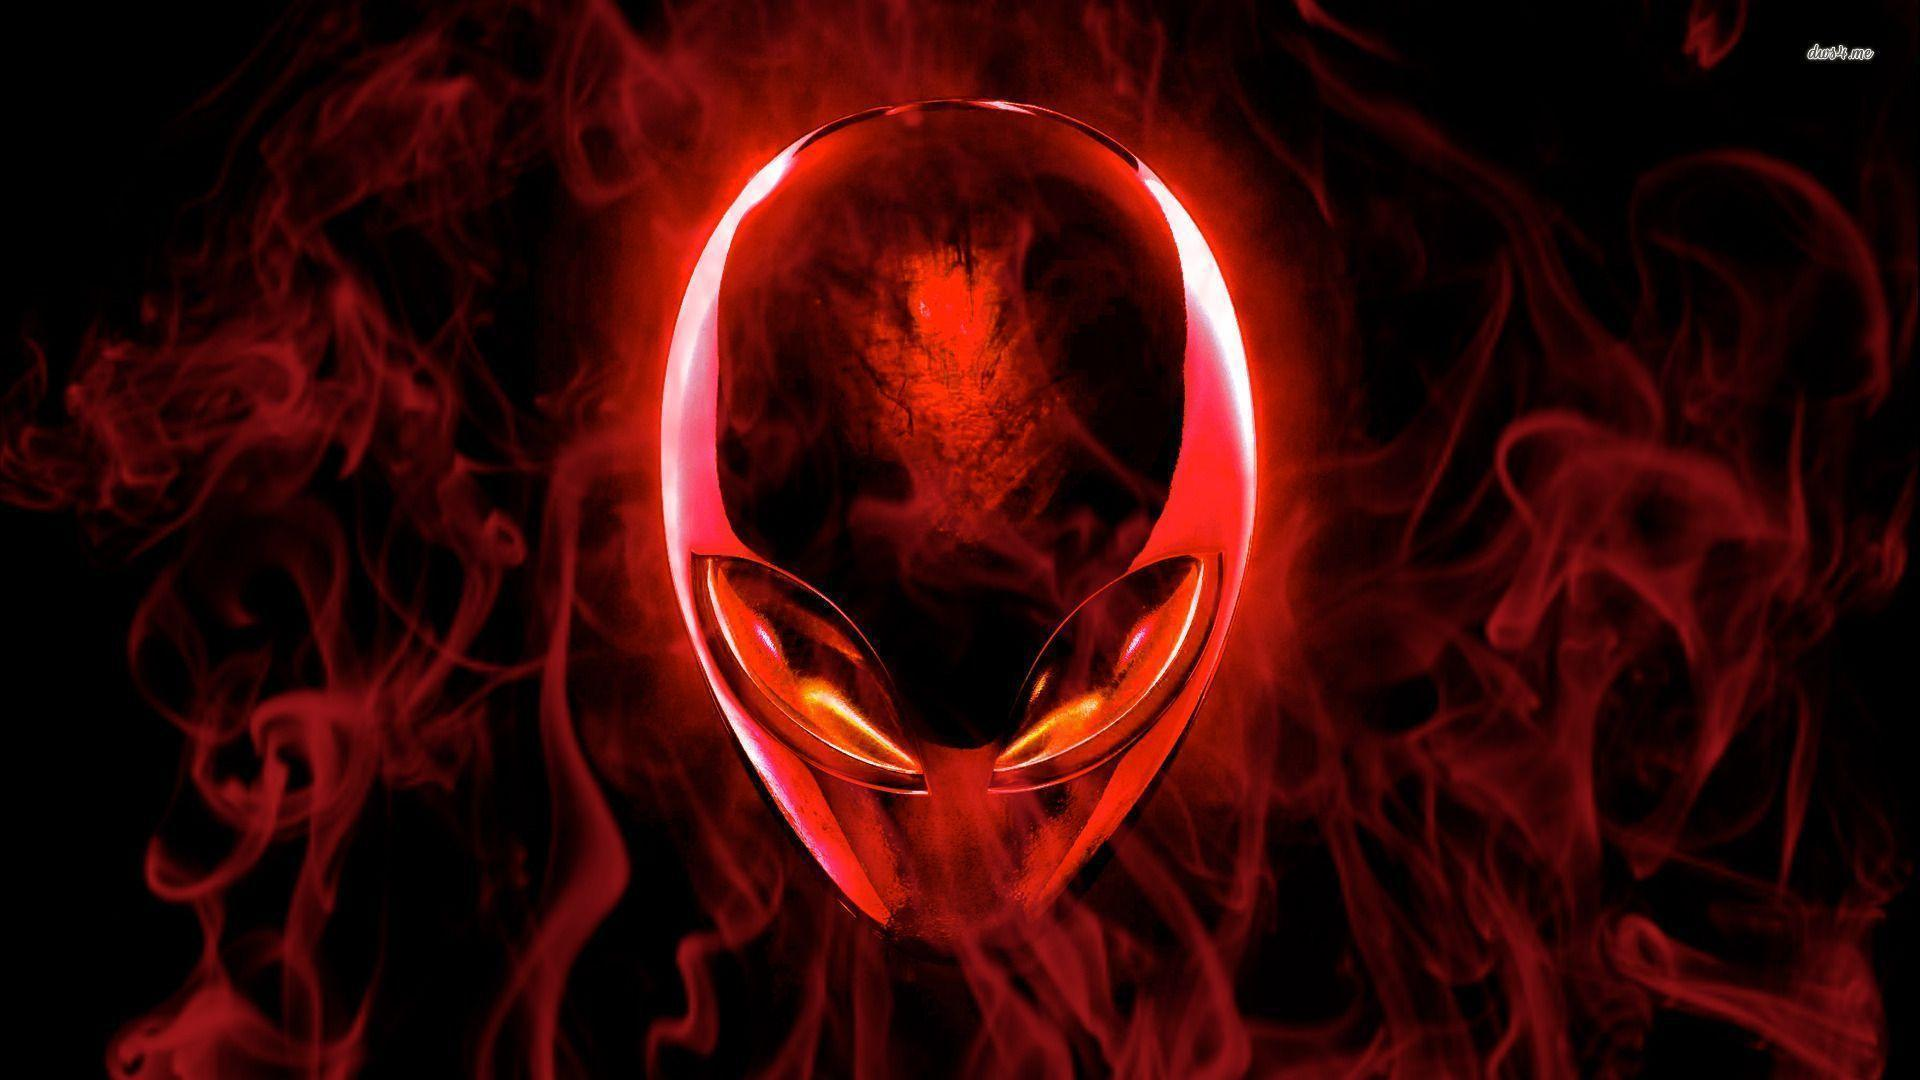 alienware wallpapers red - photo #5